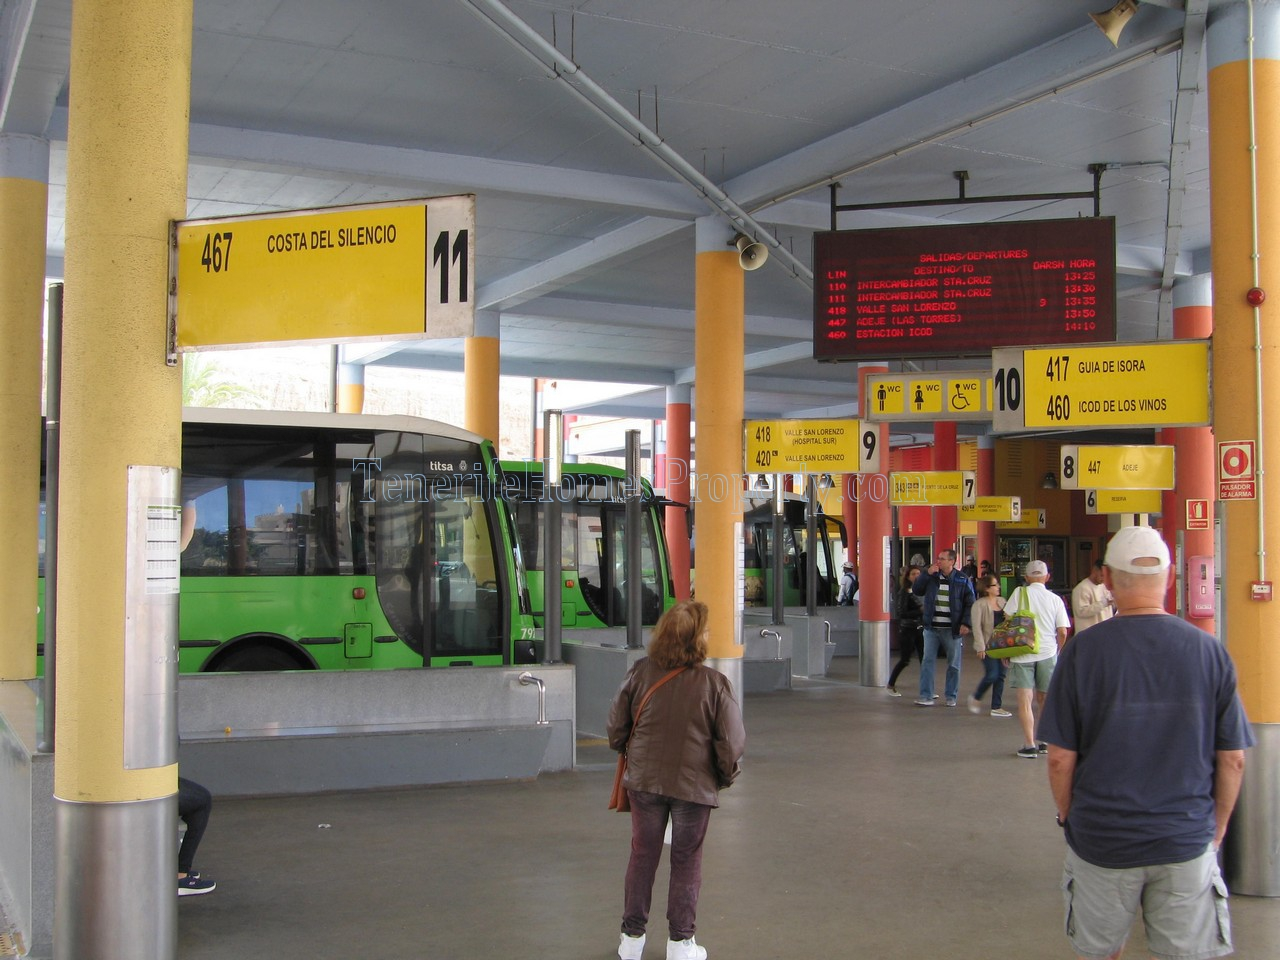 Tenerife bus in Costa Adeje bus station